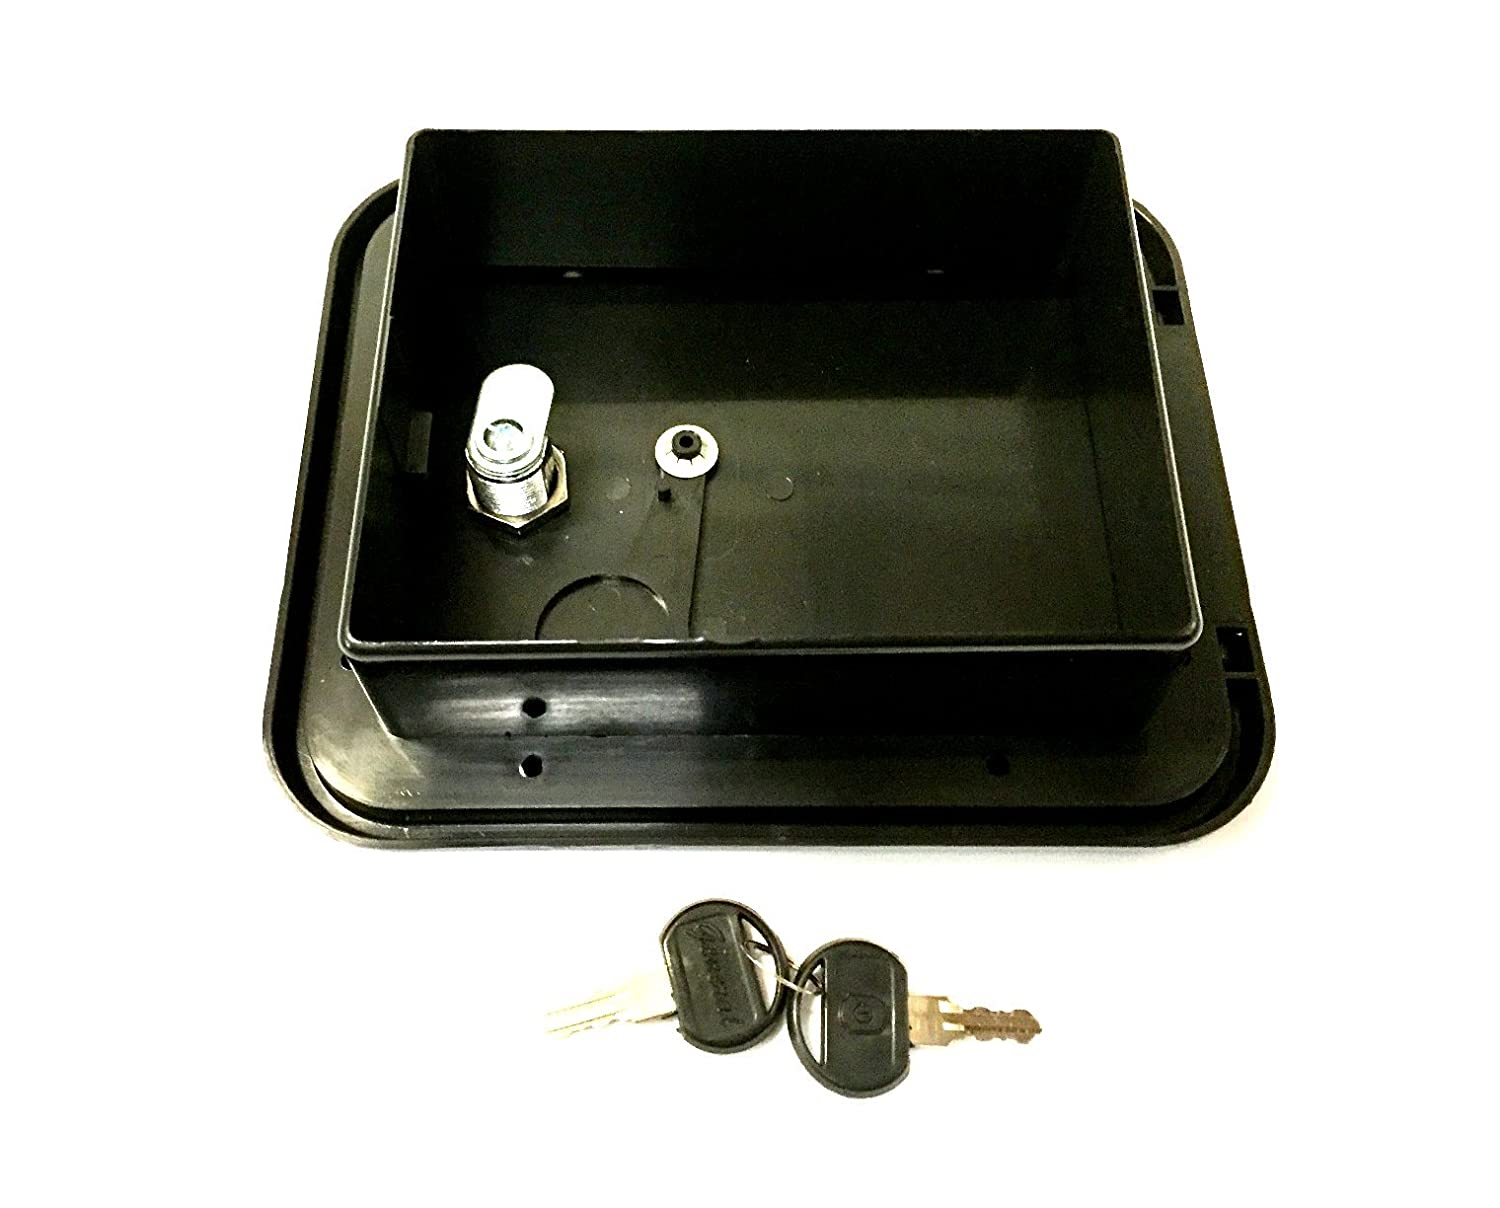 Valterra Black Electric Power Cord Cable Hatch Compartment Lock Keys